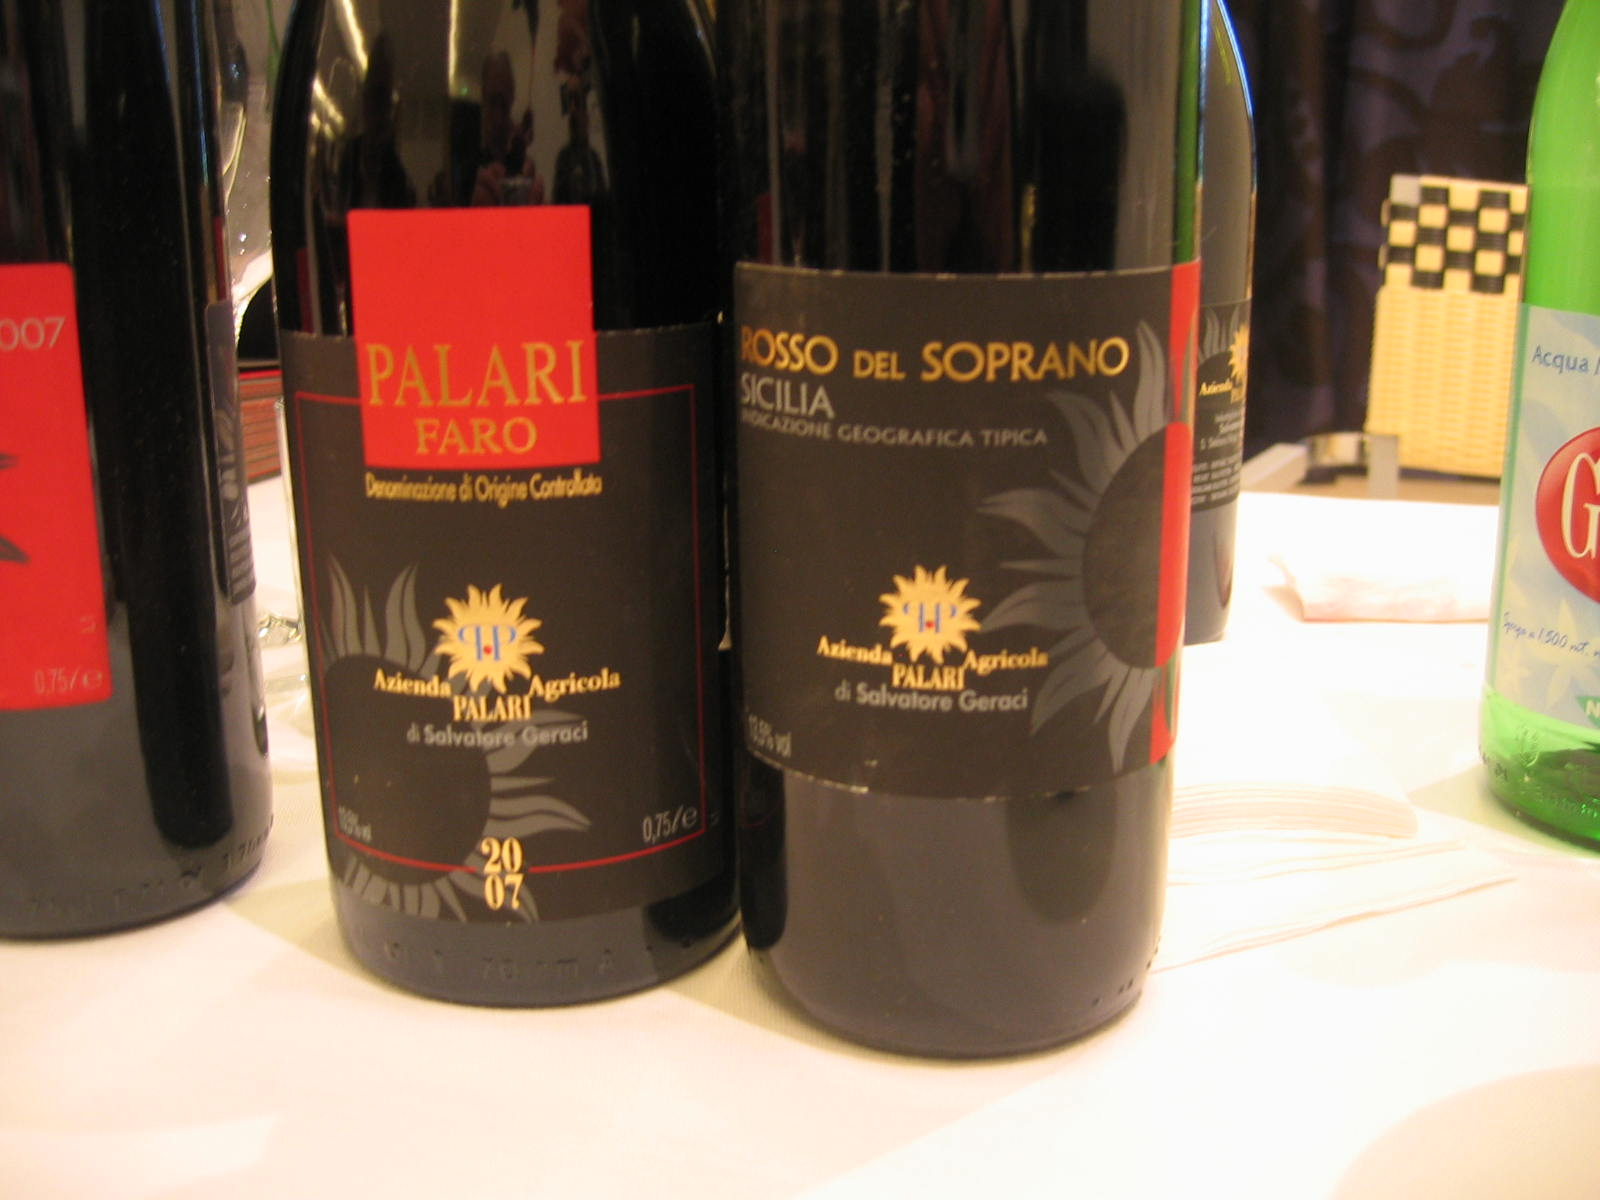 Sicily: The Wine and Tourist Island | Charles Scicolone on Wine